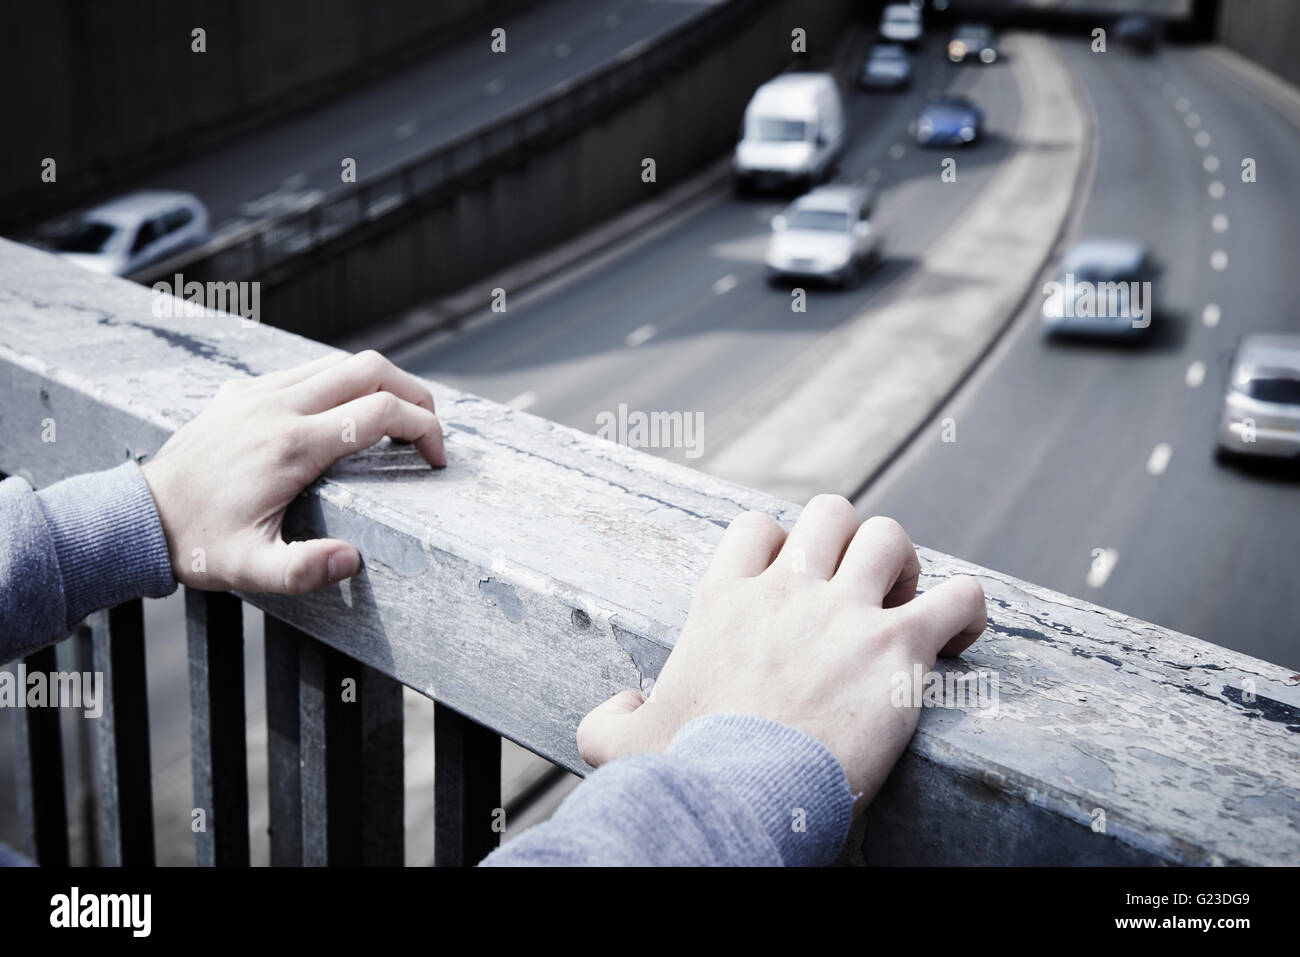 Depressed Young Man Contemplating Suicide On Road Bridge - Stock Image